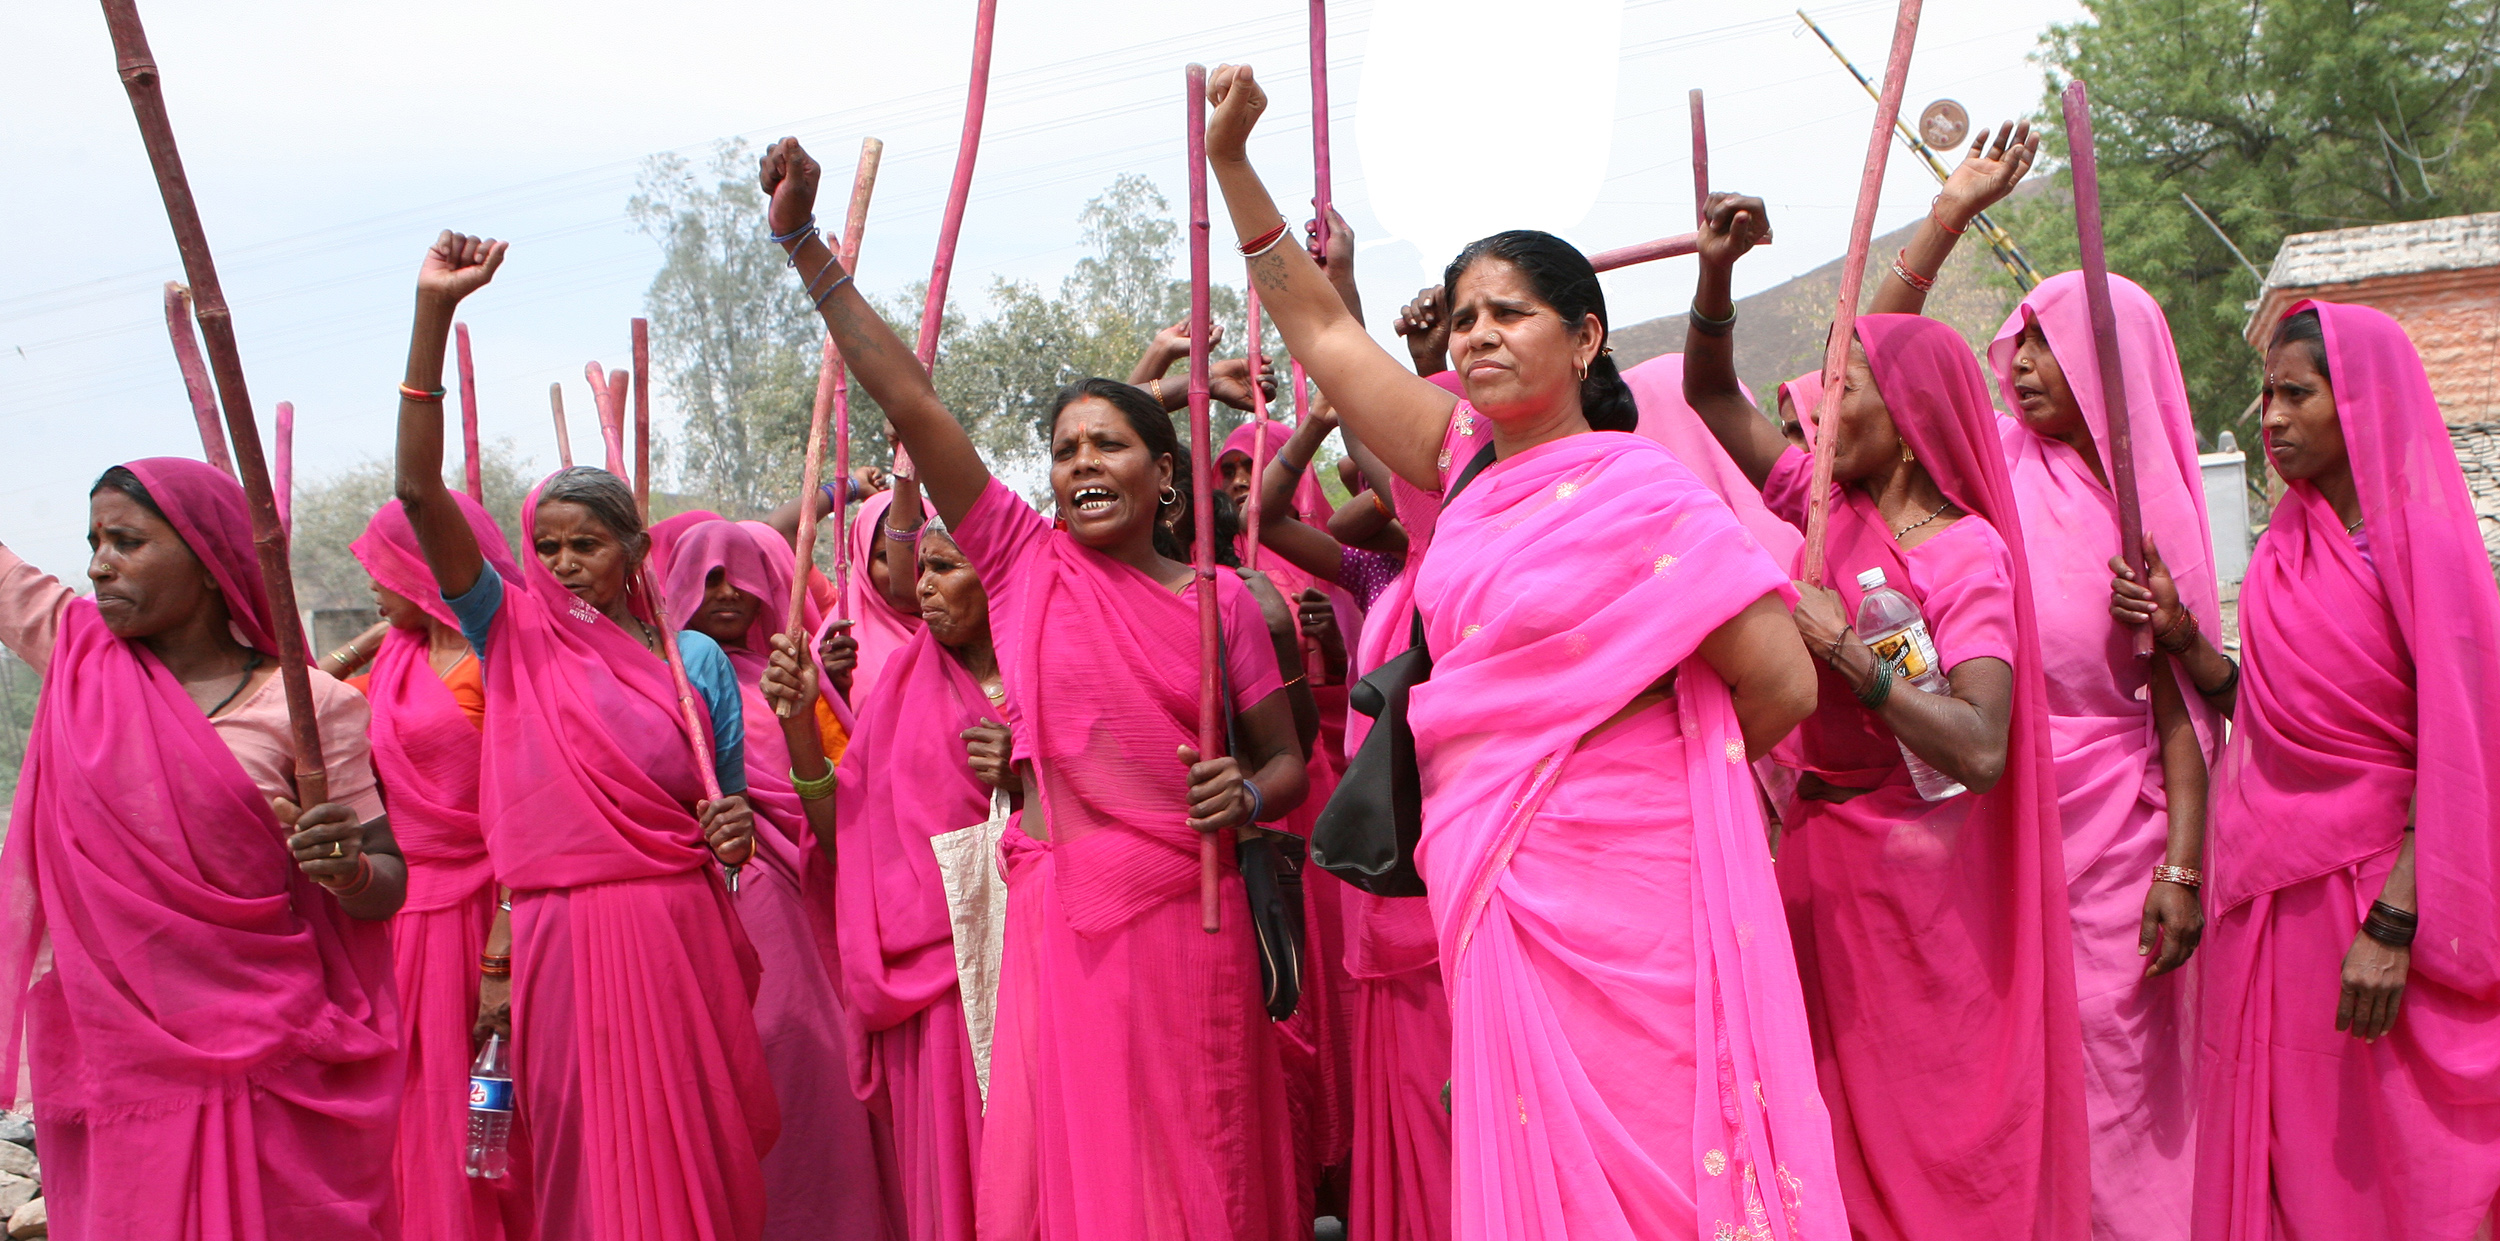 gulabi-gang-protest-photo-by-torstein-grude.jpg